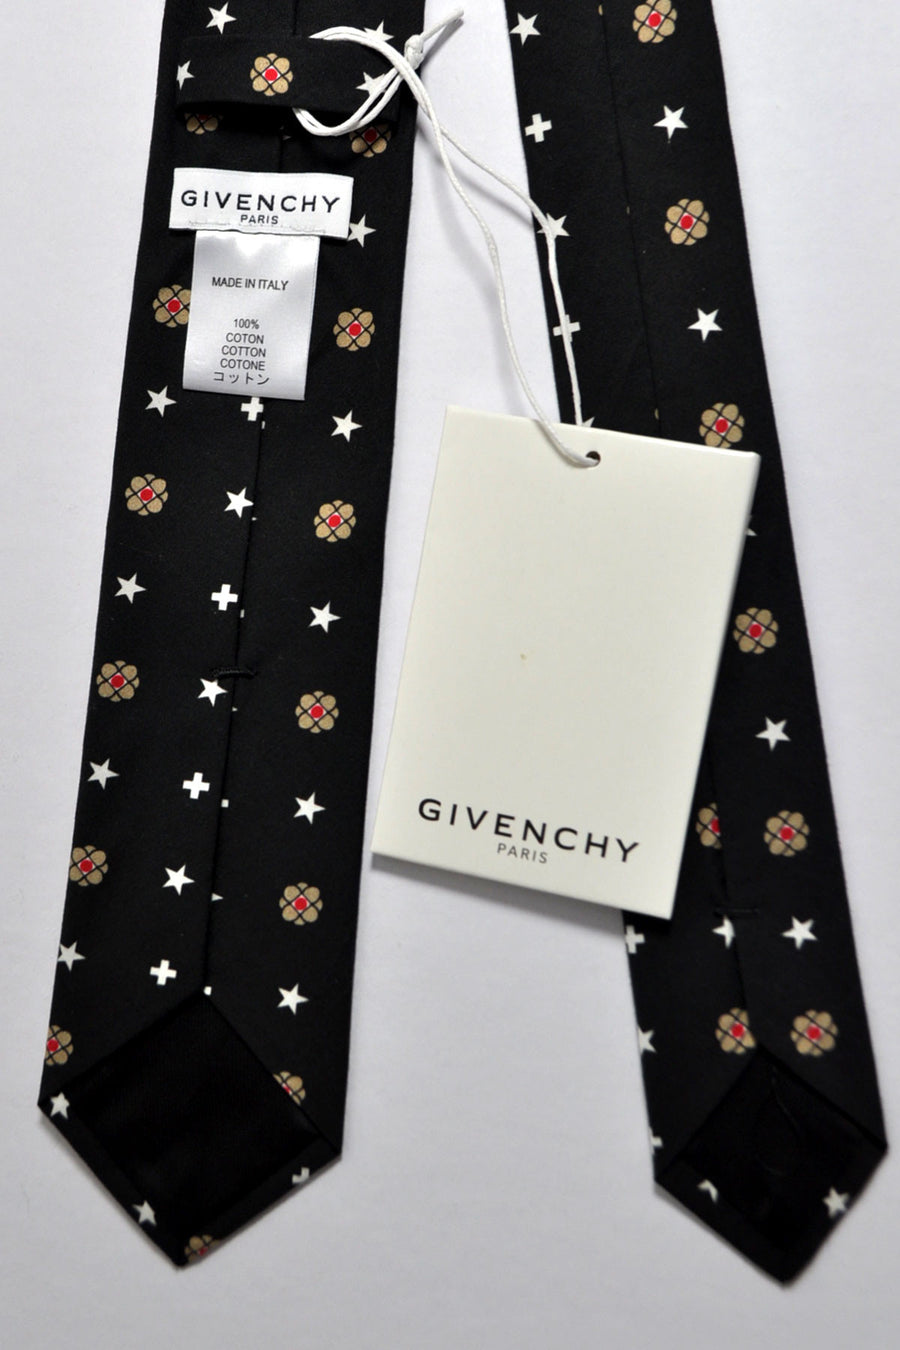 Givenchy Tie Black Signature Print - Narrow Cut